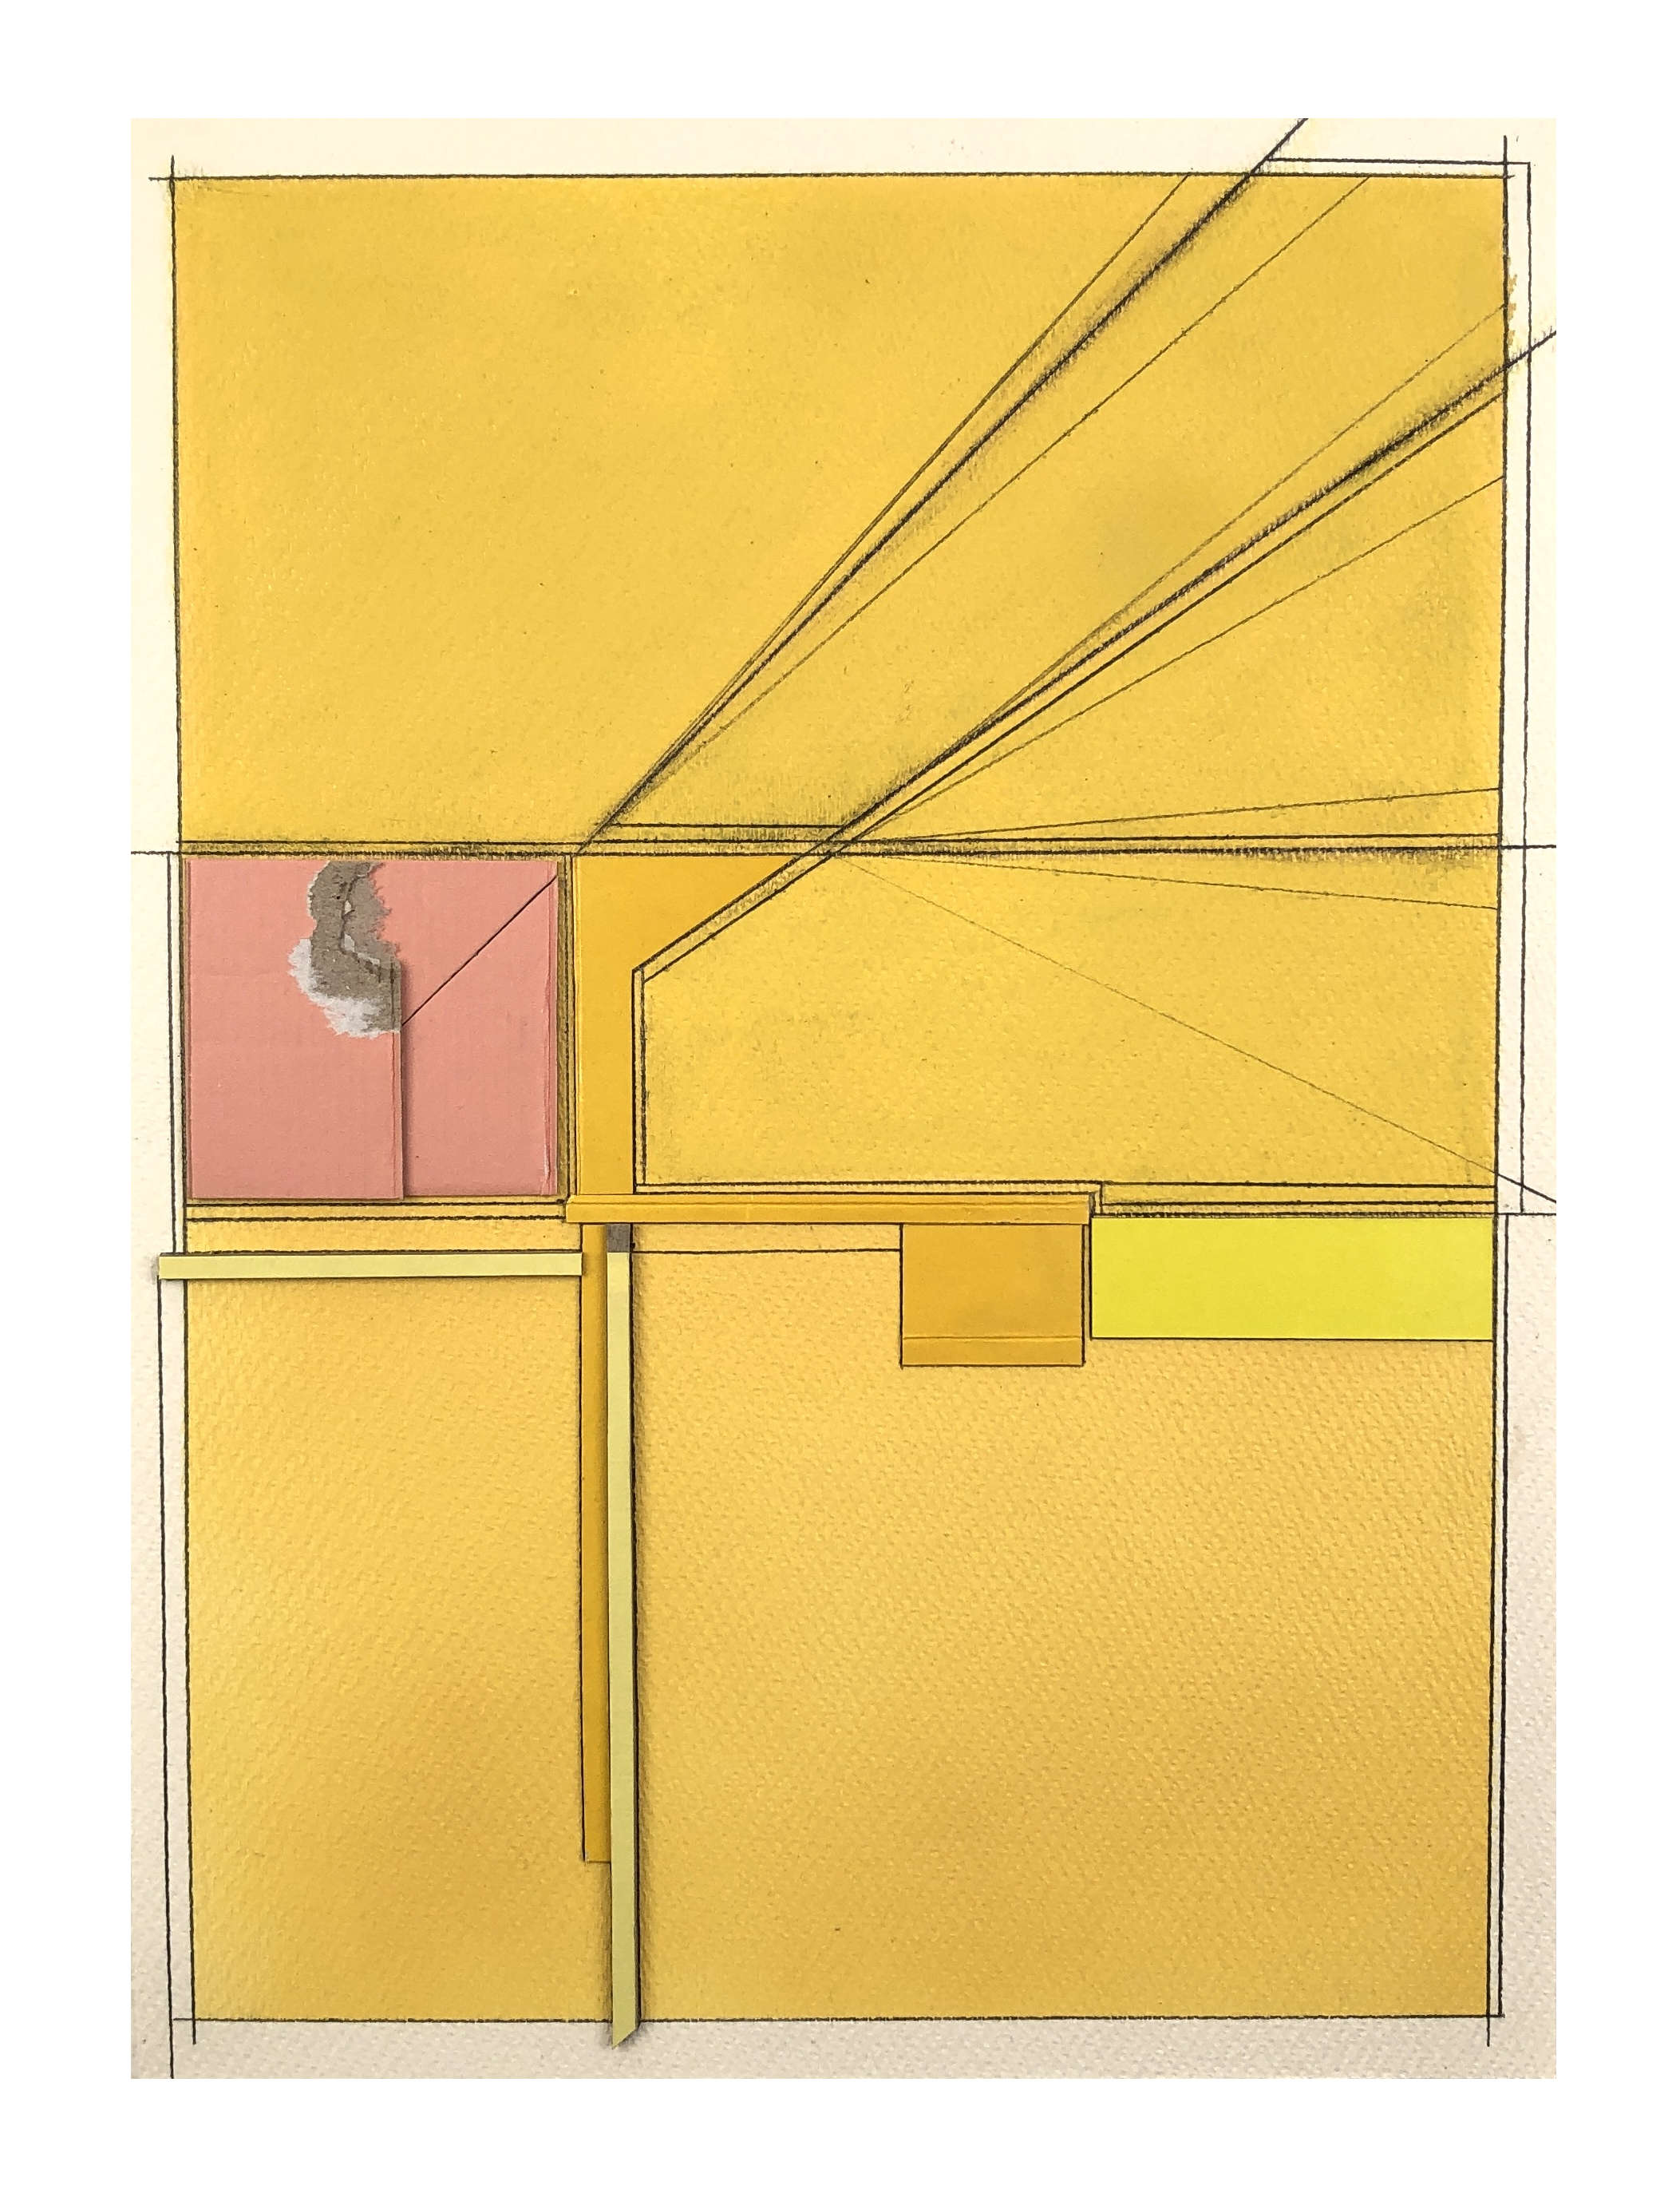 Yellow Letter 2 , 2019  Spray paint, acrylic, oil pastel, cardboard, pencil on paper  15 x 11 inches